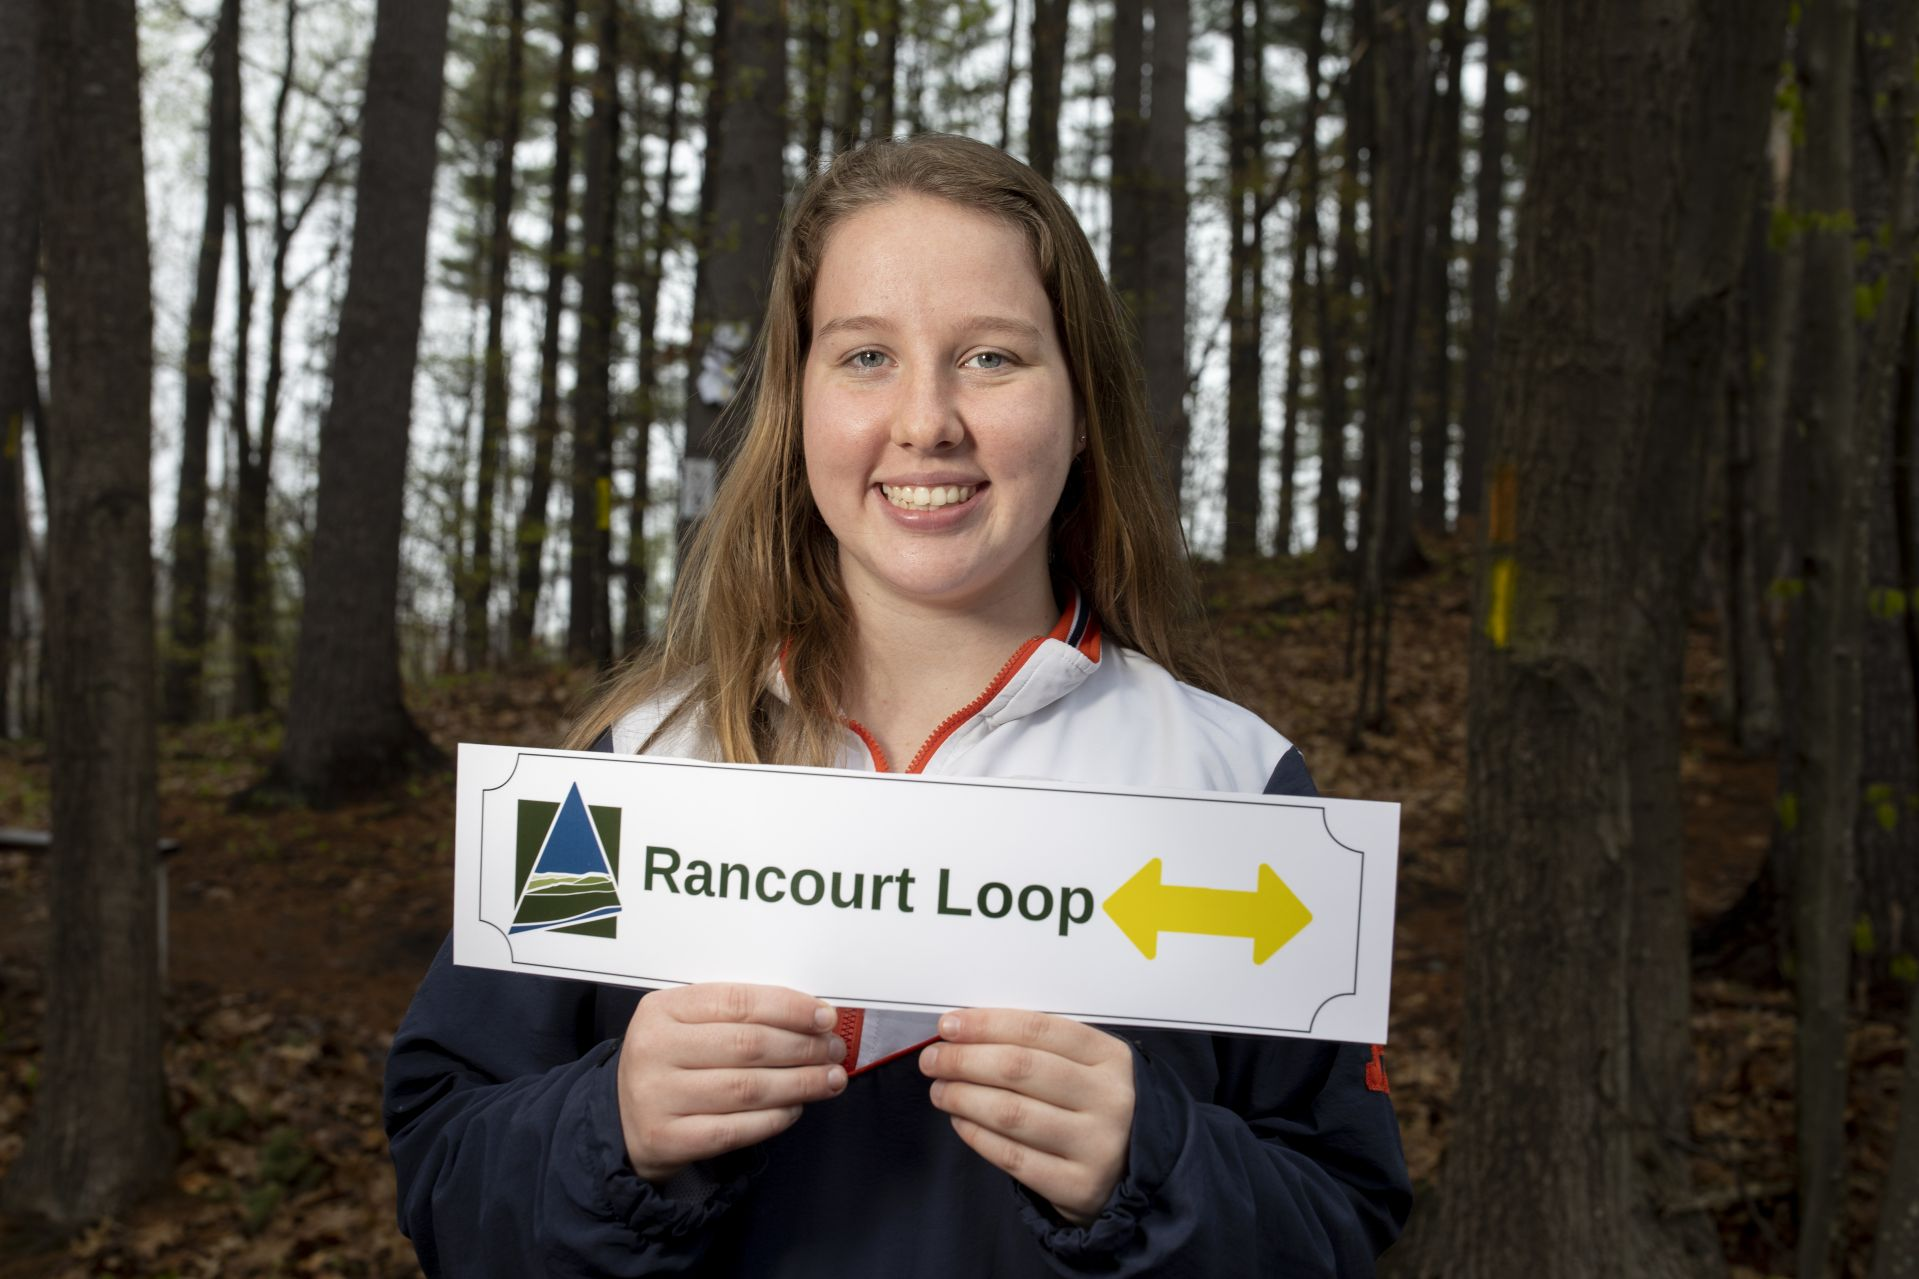 "Katherine ""Katie"" Ennis of Morristown, N.J. '20 is partnering with the Androscoggin Land Trust to advance trail signage and mapping improvements. She's helping them assess trail conditions and supporting their efforts to develop a comprehensive trail improvement plan. Helping to create maps and signage templates, researching practices for trail management among other trail managing organizations, developing a plan for how the work on the trails can be completed.Katie, in red, white, and blue jacket, is shown at the entrance and just inside of the Androscoggin Land Trust David Rancourt Preserve on Two Tall Pines Road, with her friend Julie Vallario, Mark Johnson, Androscoggin Land Trust David Rancourt Preserve Steward, and Shelley Kruszewski, executive director of the Androscoggin Land Trust. She brought Julie, a lifelong friend, to help her post temporary trail signs with a ladder. The permanent ones will be posted next week. STA/RT, that is — the Short Term Action/Research Team, a working group comprising 10 students who head downtown every year for five-week projects with local partners. With support from the Harward Center for Community Partnerships, the students bring skills, stick-to-itiveness, and, it turns out, a good dose of self-awareness to their work."